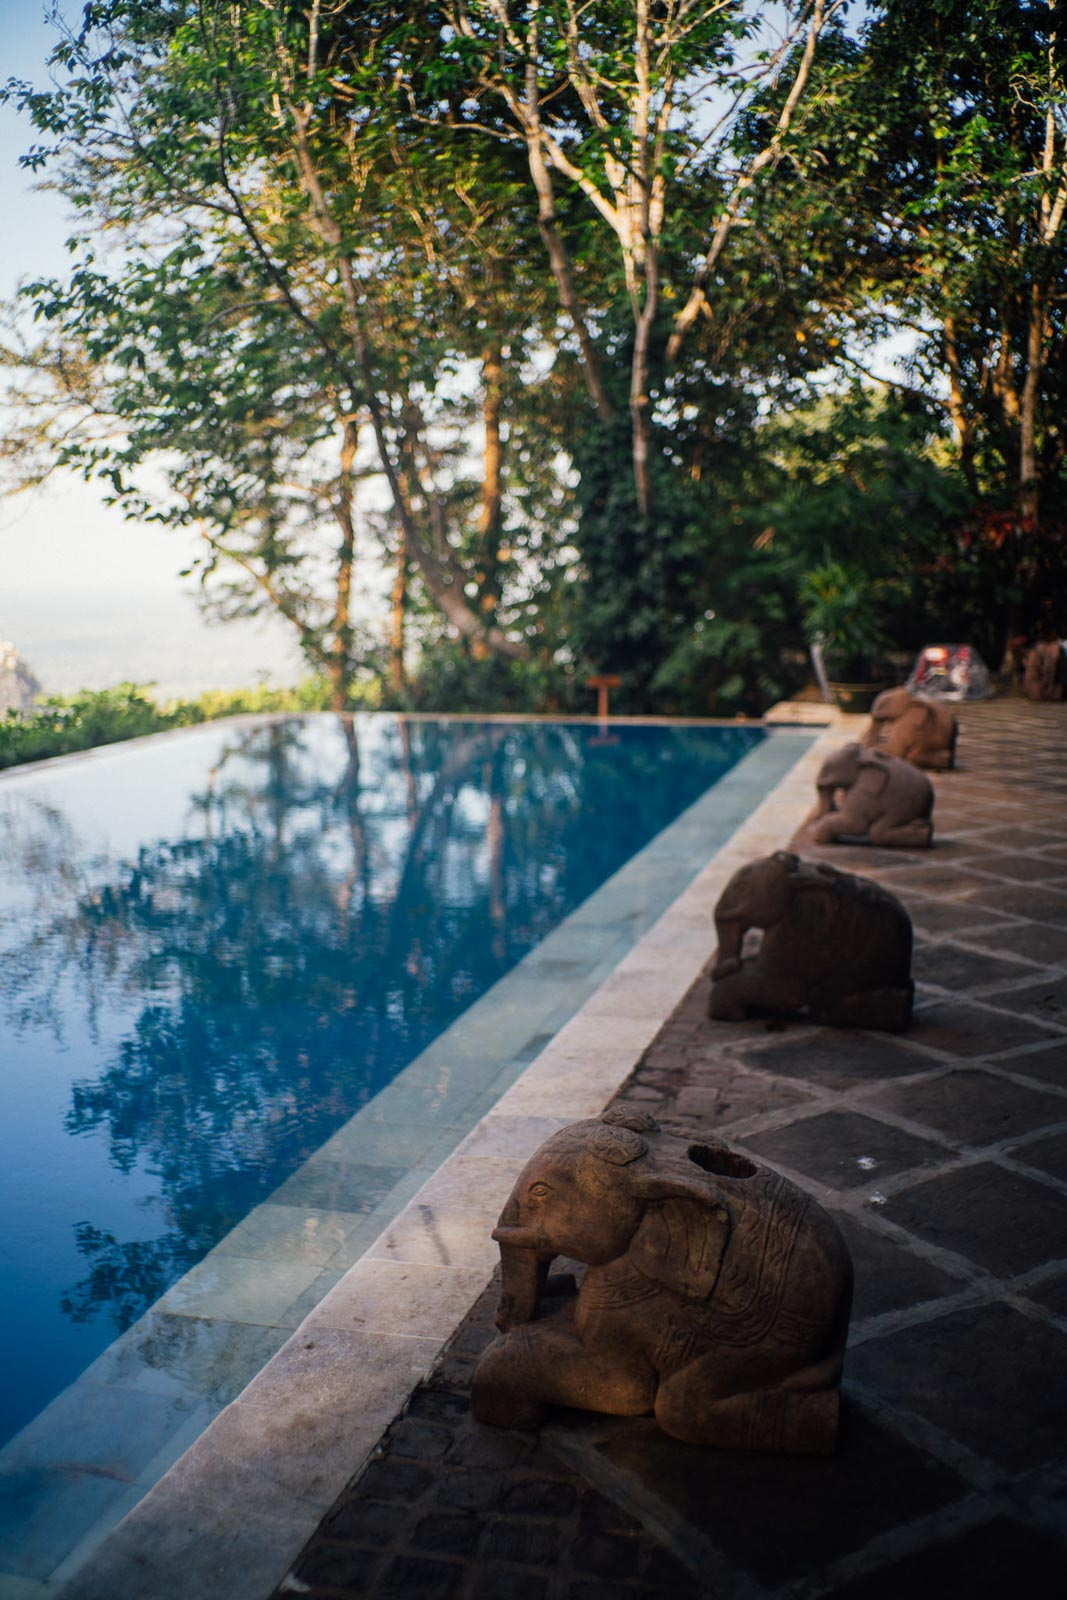 Best hotel in Mandalay, Popa mountain resort